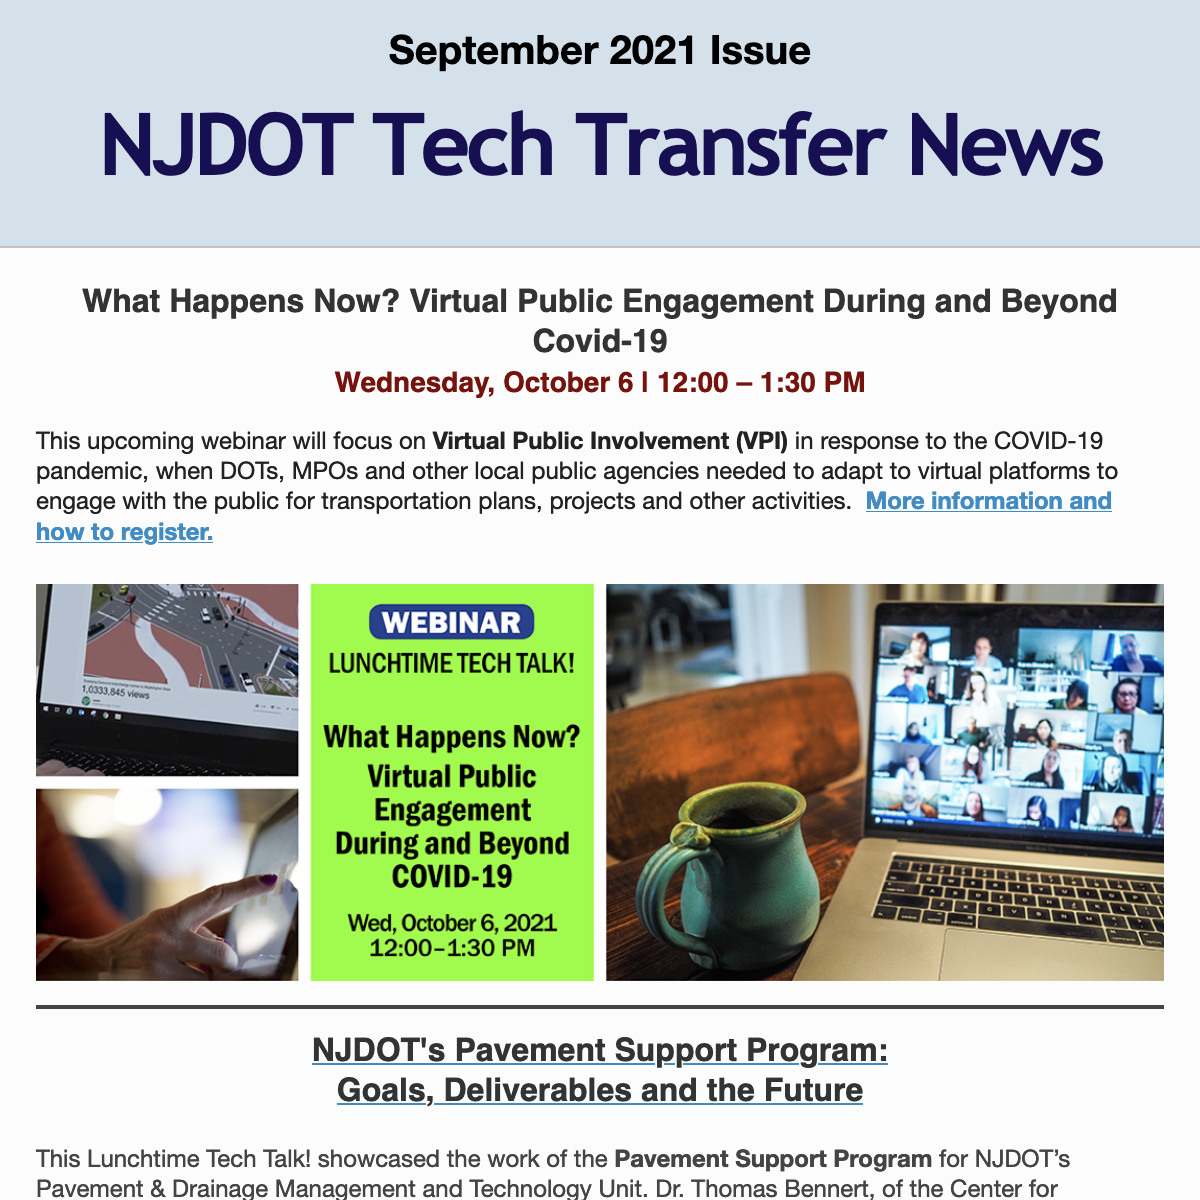 Reads September 2021 NJDOT Tech Transfer News, with first item being What Happens Now? Virtual Public Engagement During and Beyond Covid-19